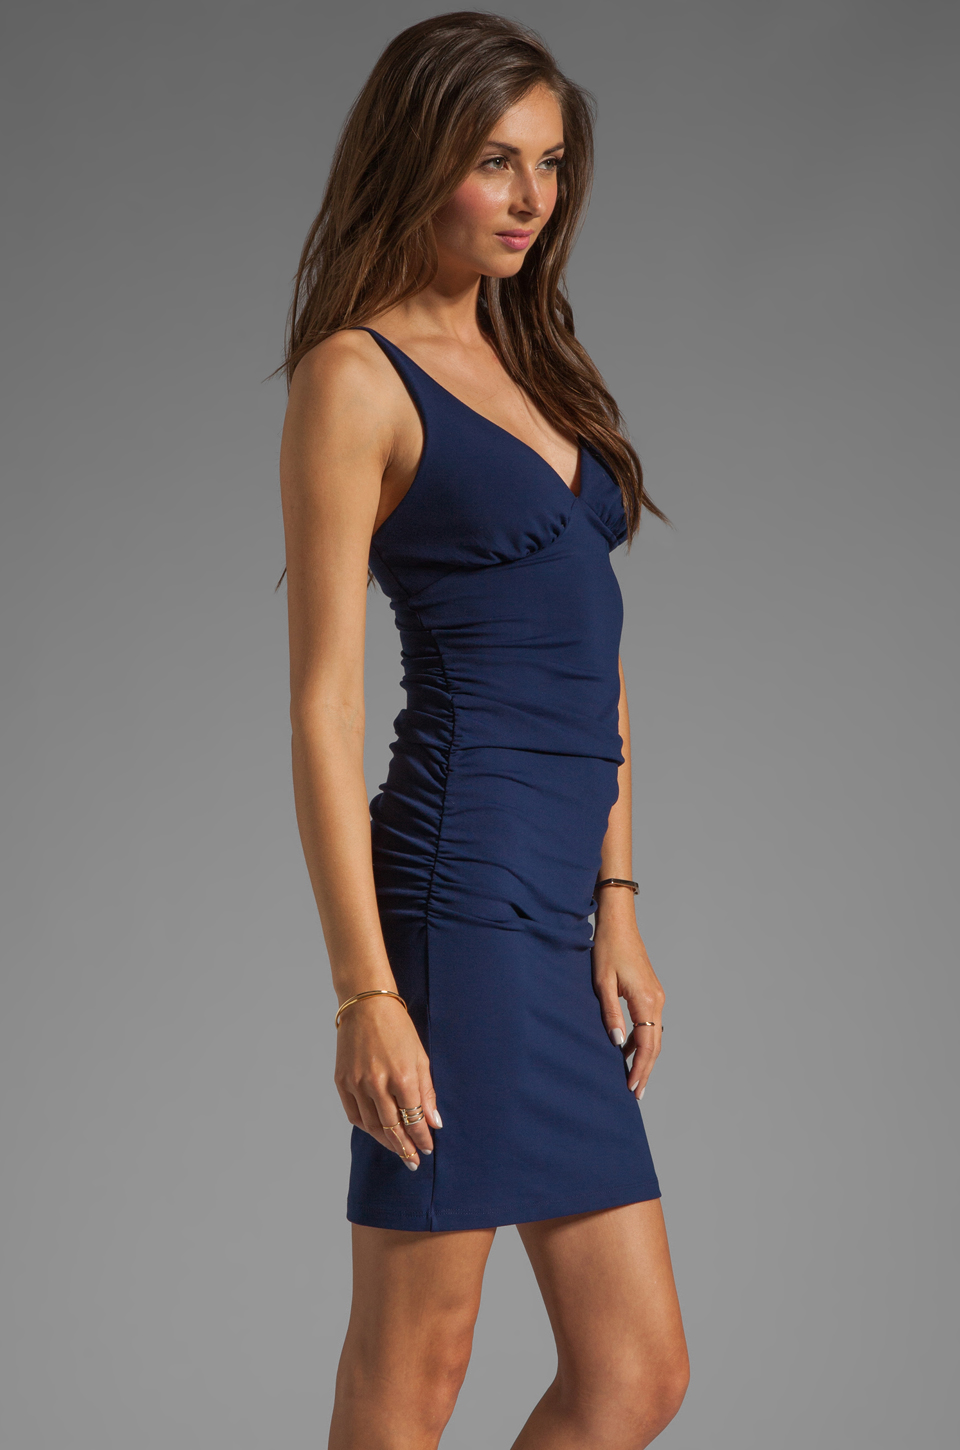 Susana Monaco Tank Dress in Deep Sea